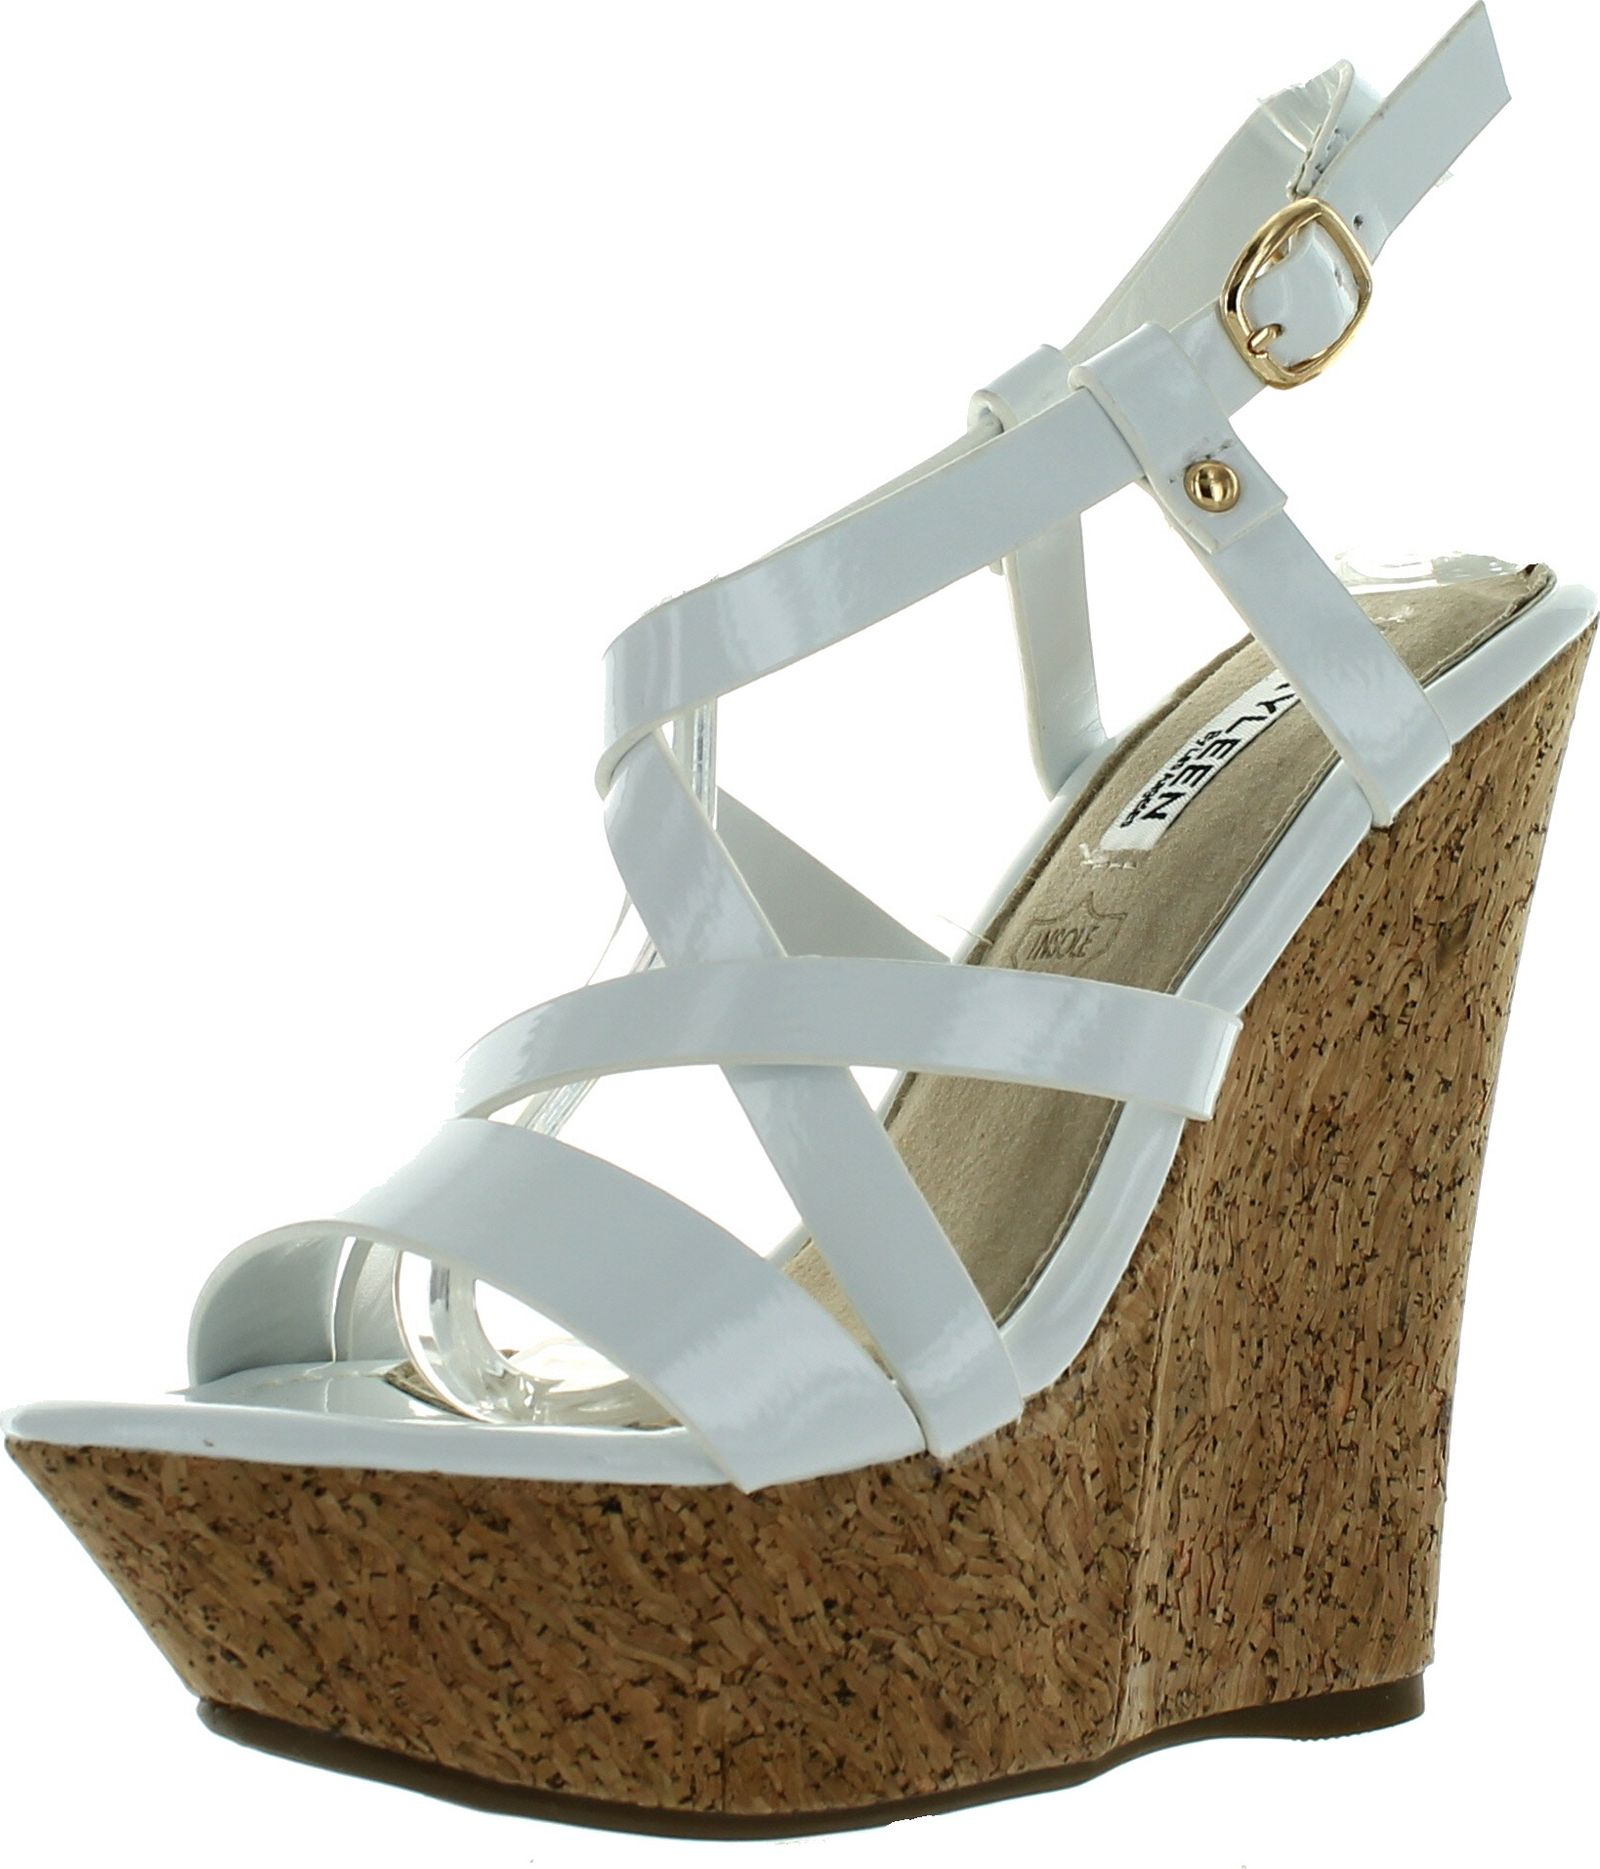 Dame-2 Womens Criss Cross Strappy High Heel Platform Wedge Sandals